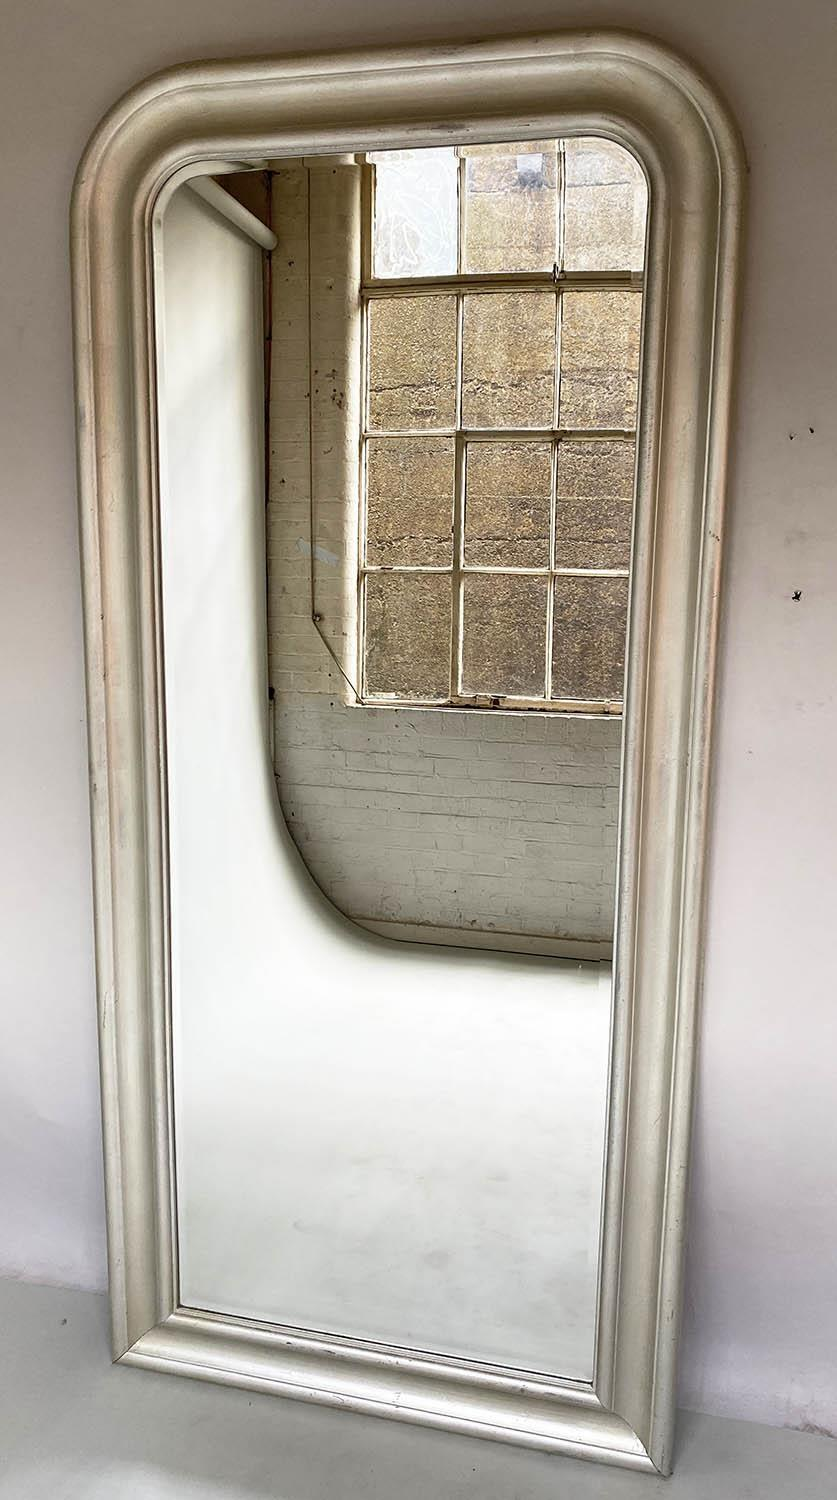 WALL MIRROR, tall arched rectangular moulded silvered frame with bevelled mirror plate, 90cm x 200cm